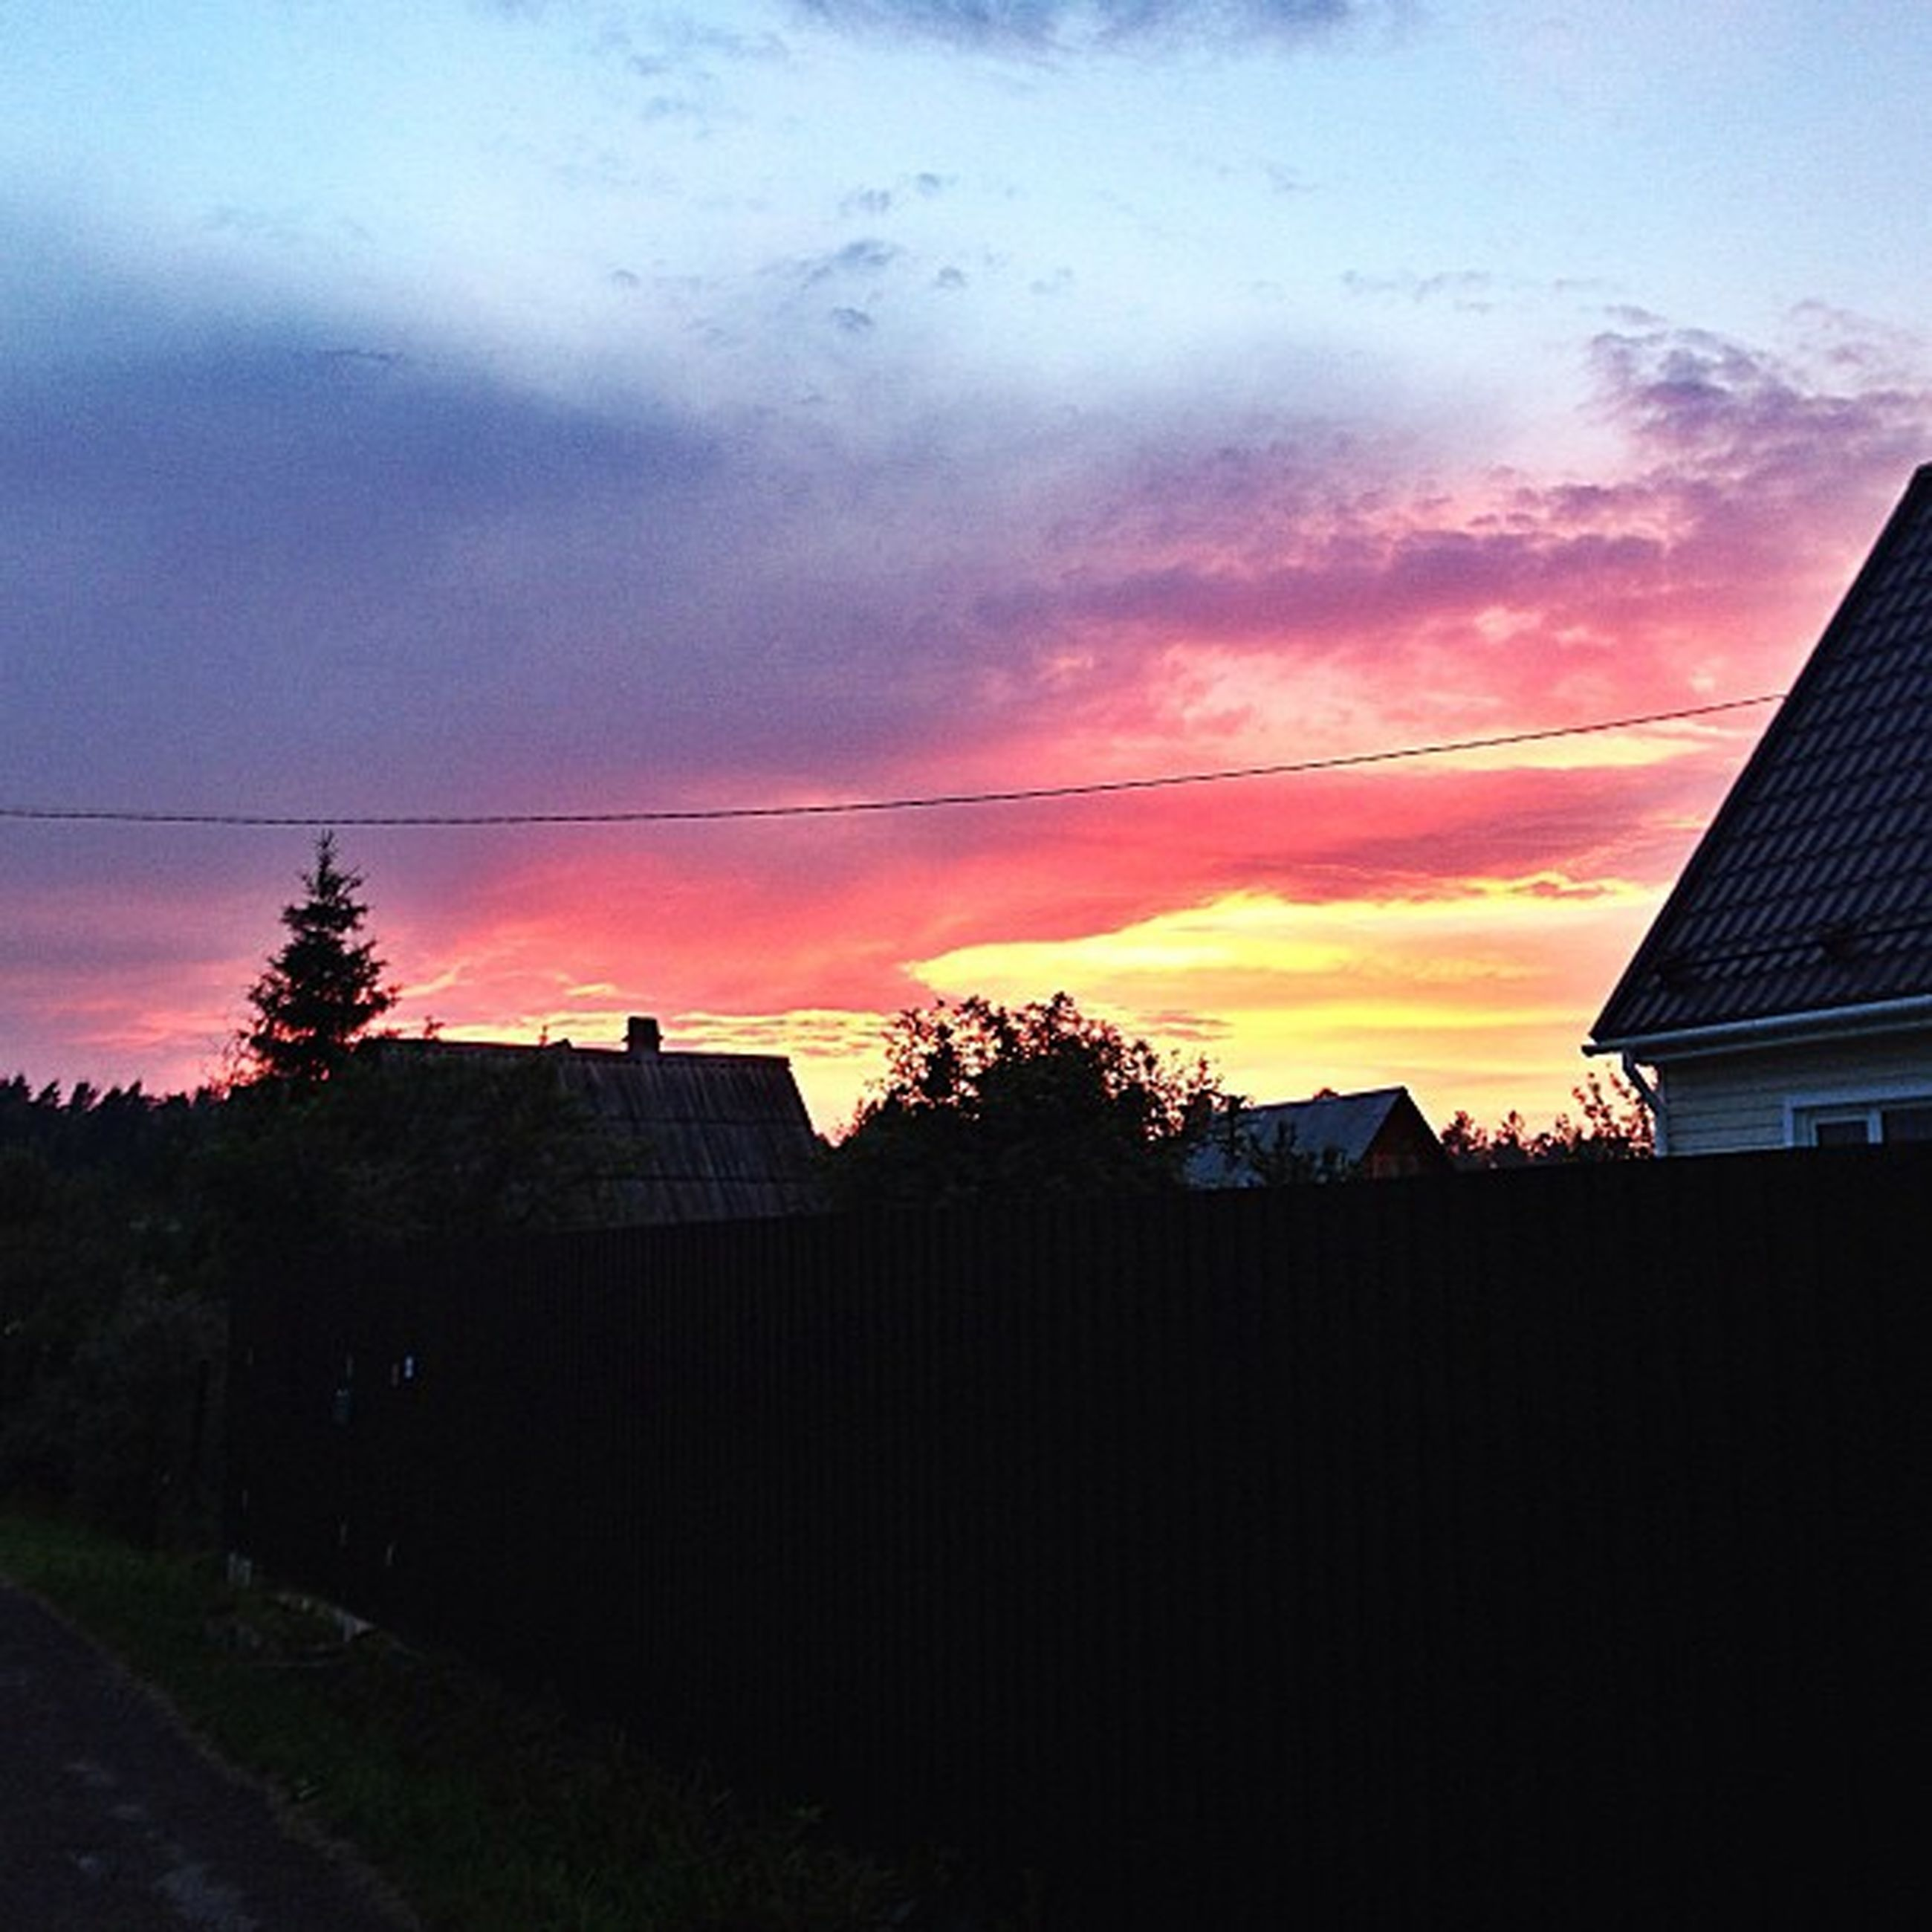 sunset, building exterior, architecture, sky, silhouette, built structure, orange color, house, cloud - sky, power line, tree, residential structure, cloud, low angle view, beauty in nature, electricity pylon, nature, scenics, no people, cloudy